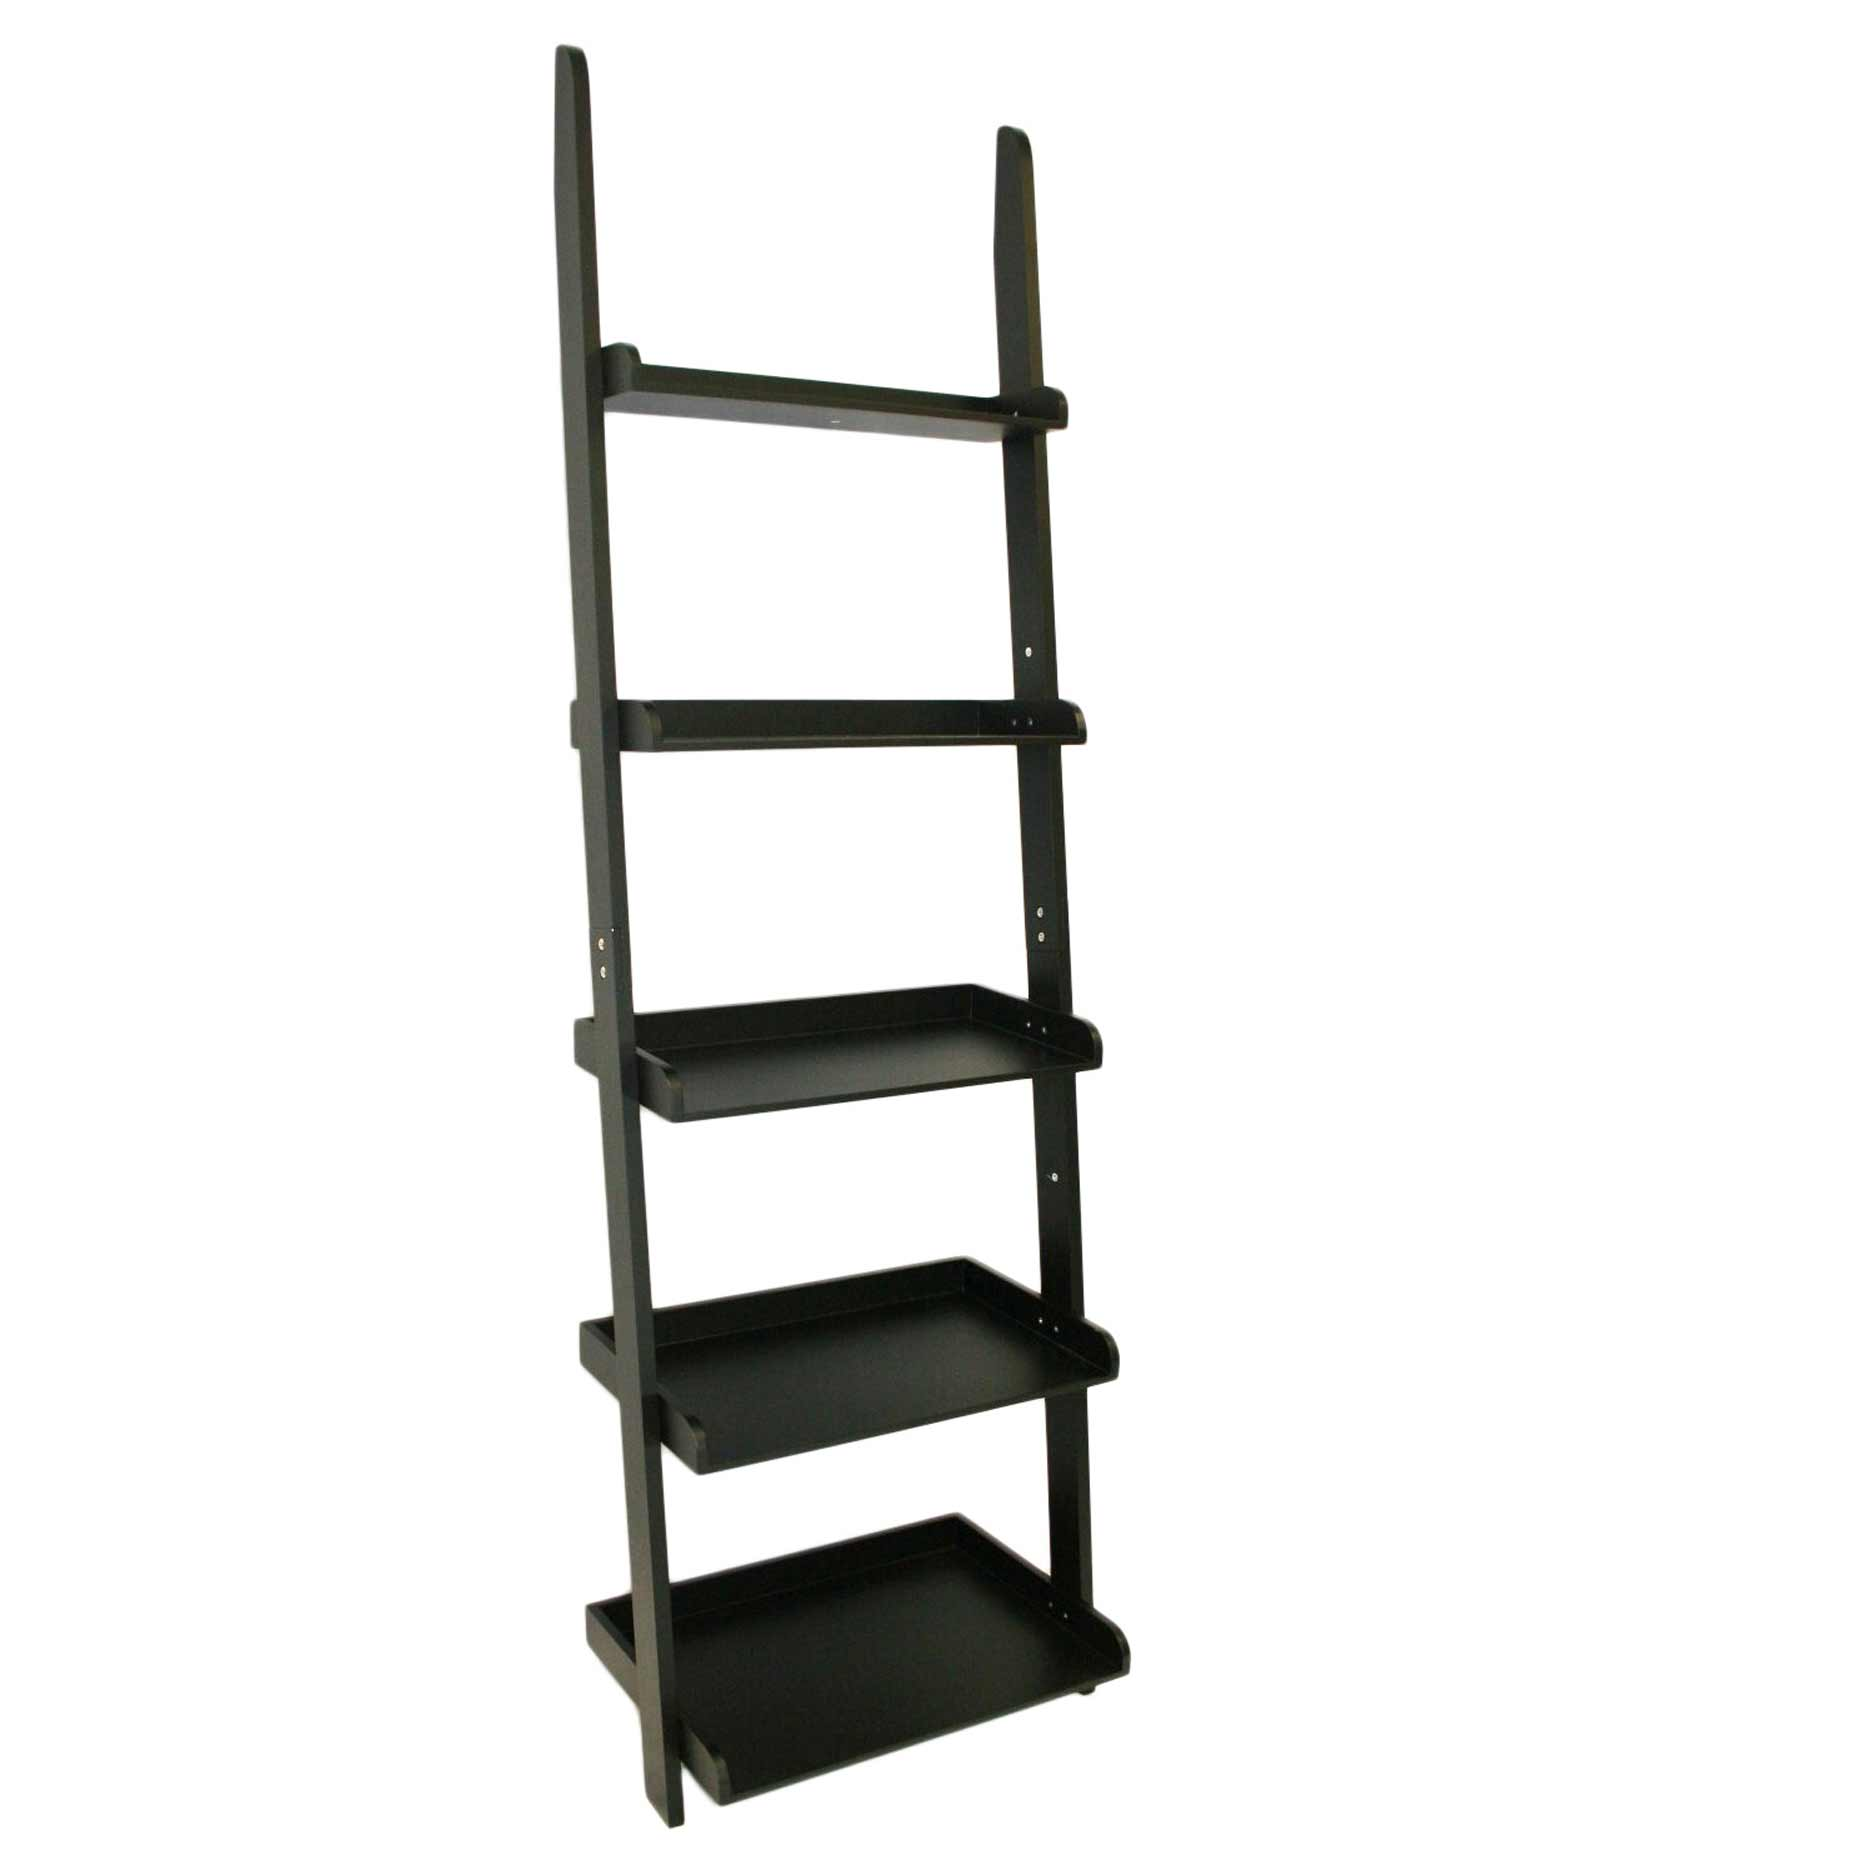 5 tier black leaning ladder wall shelf